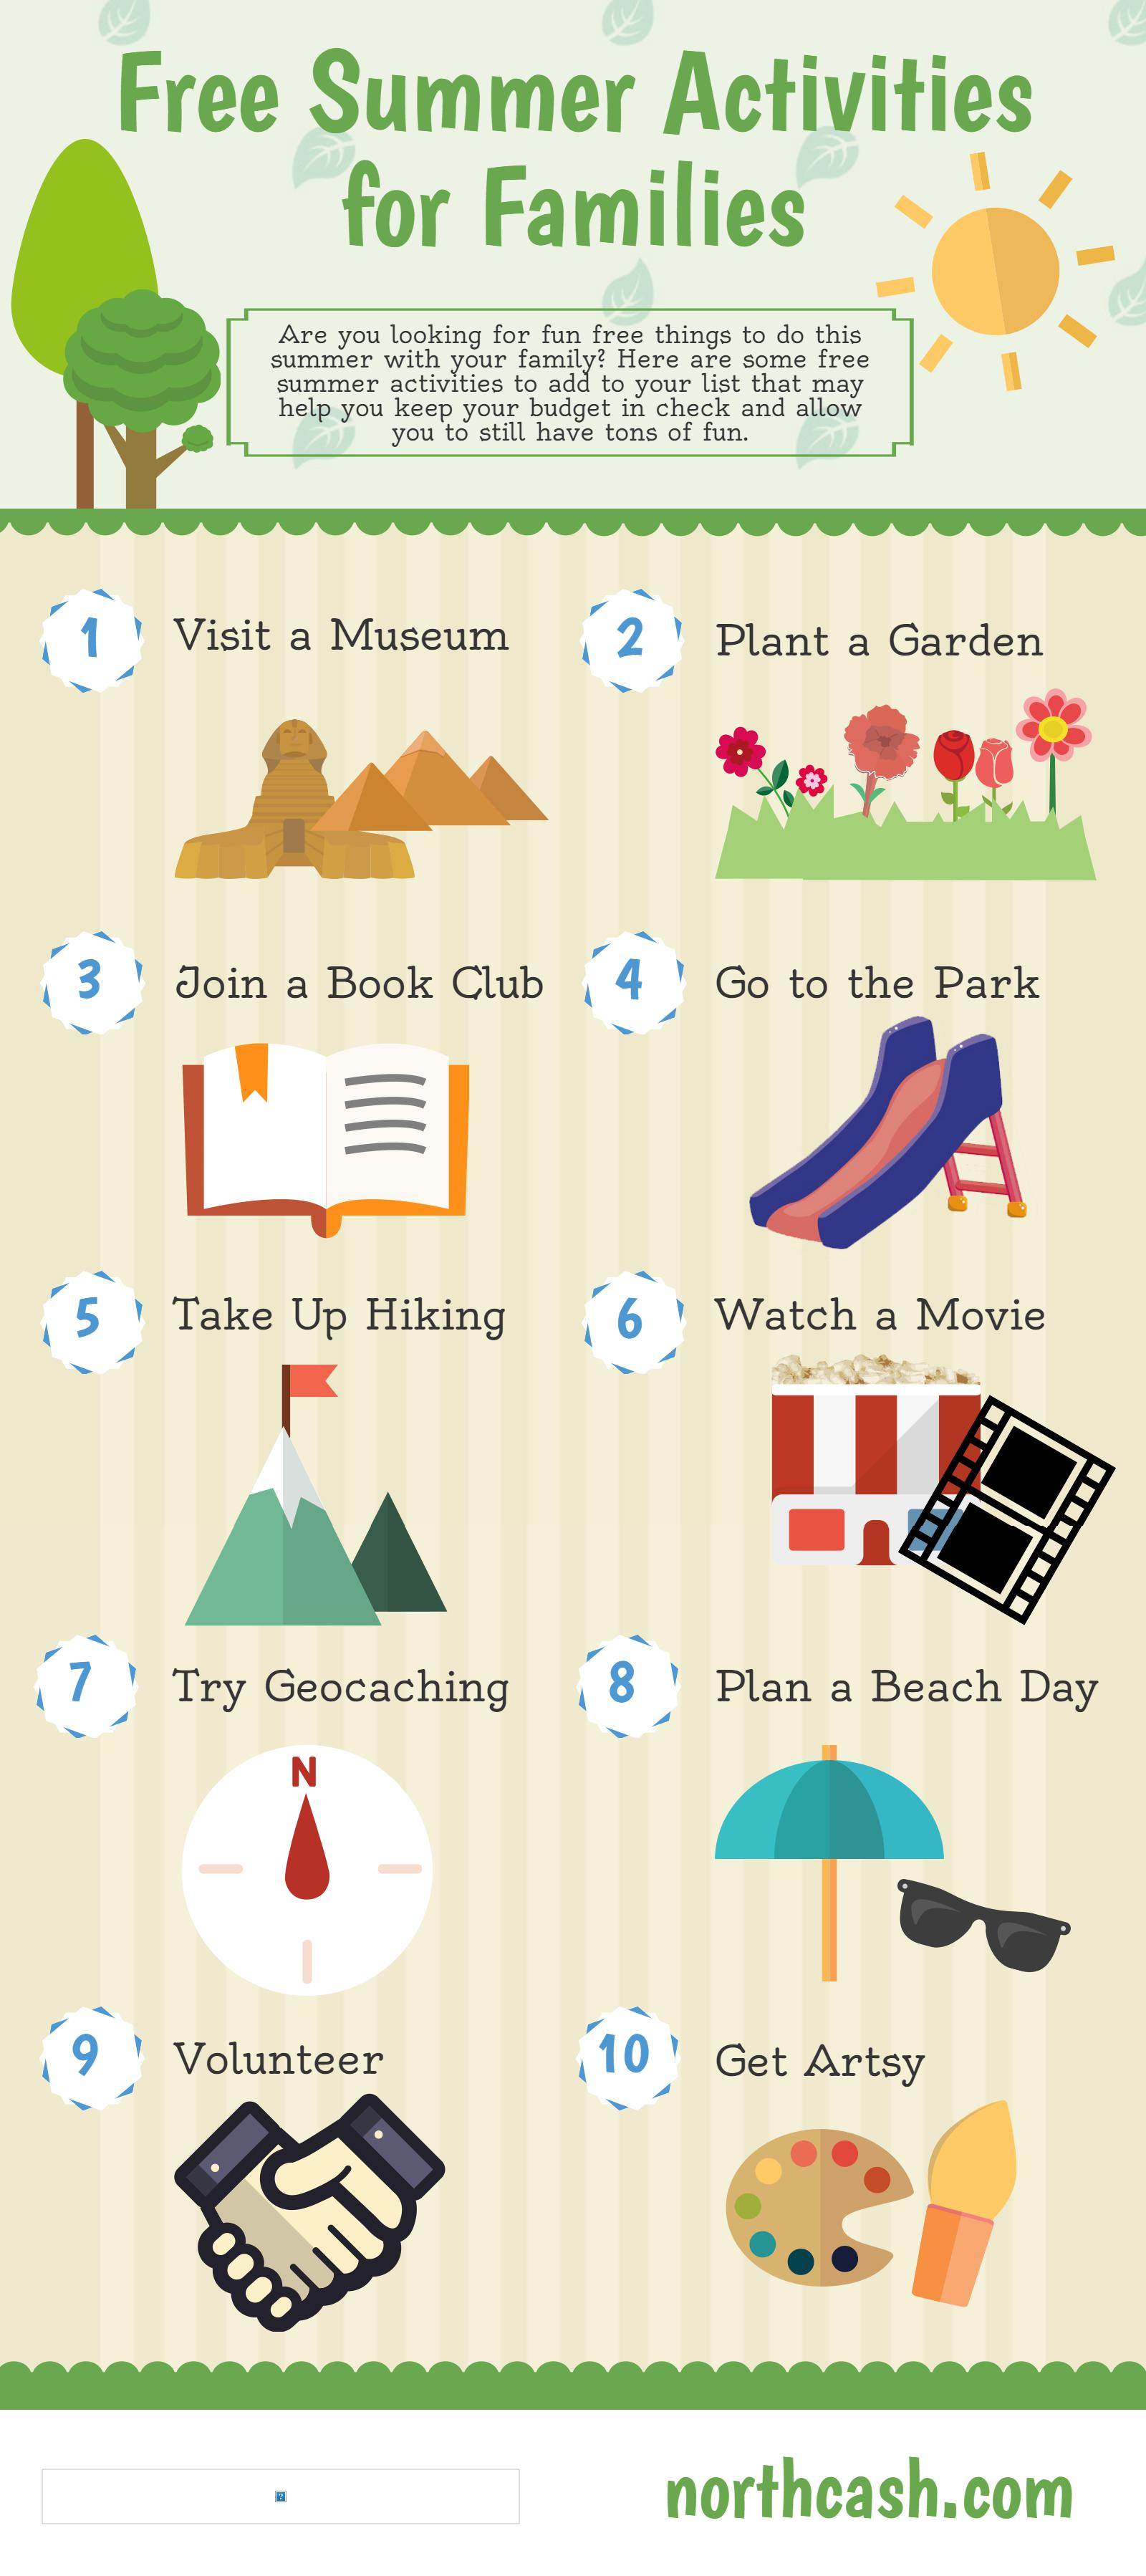 Free Summer Activities INFOGRAPHIC by  Northcash.com